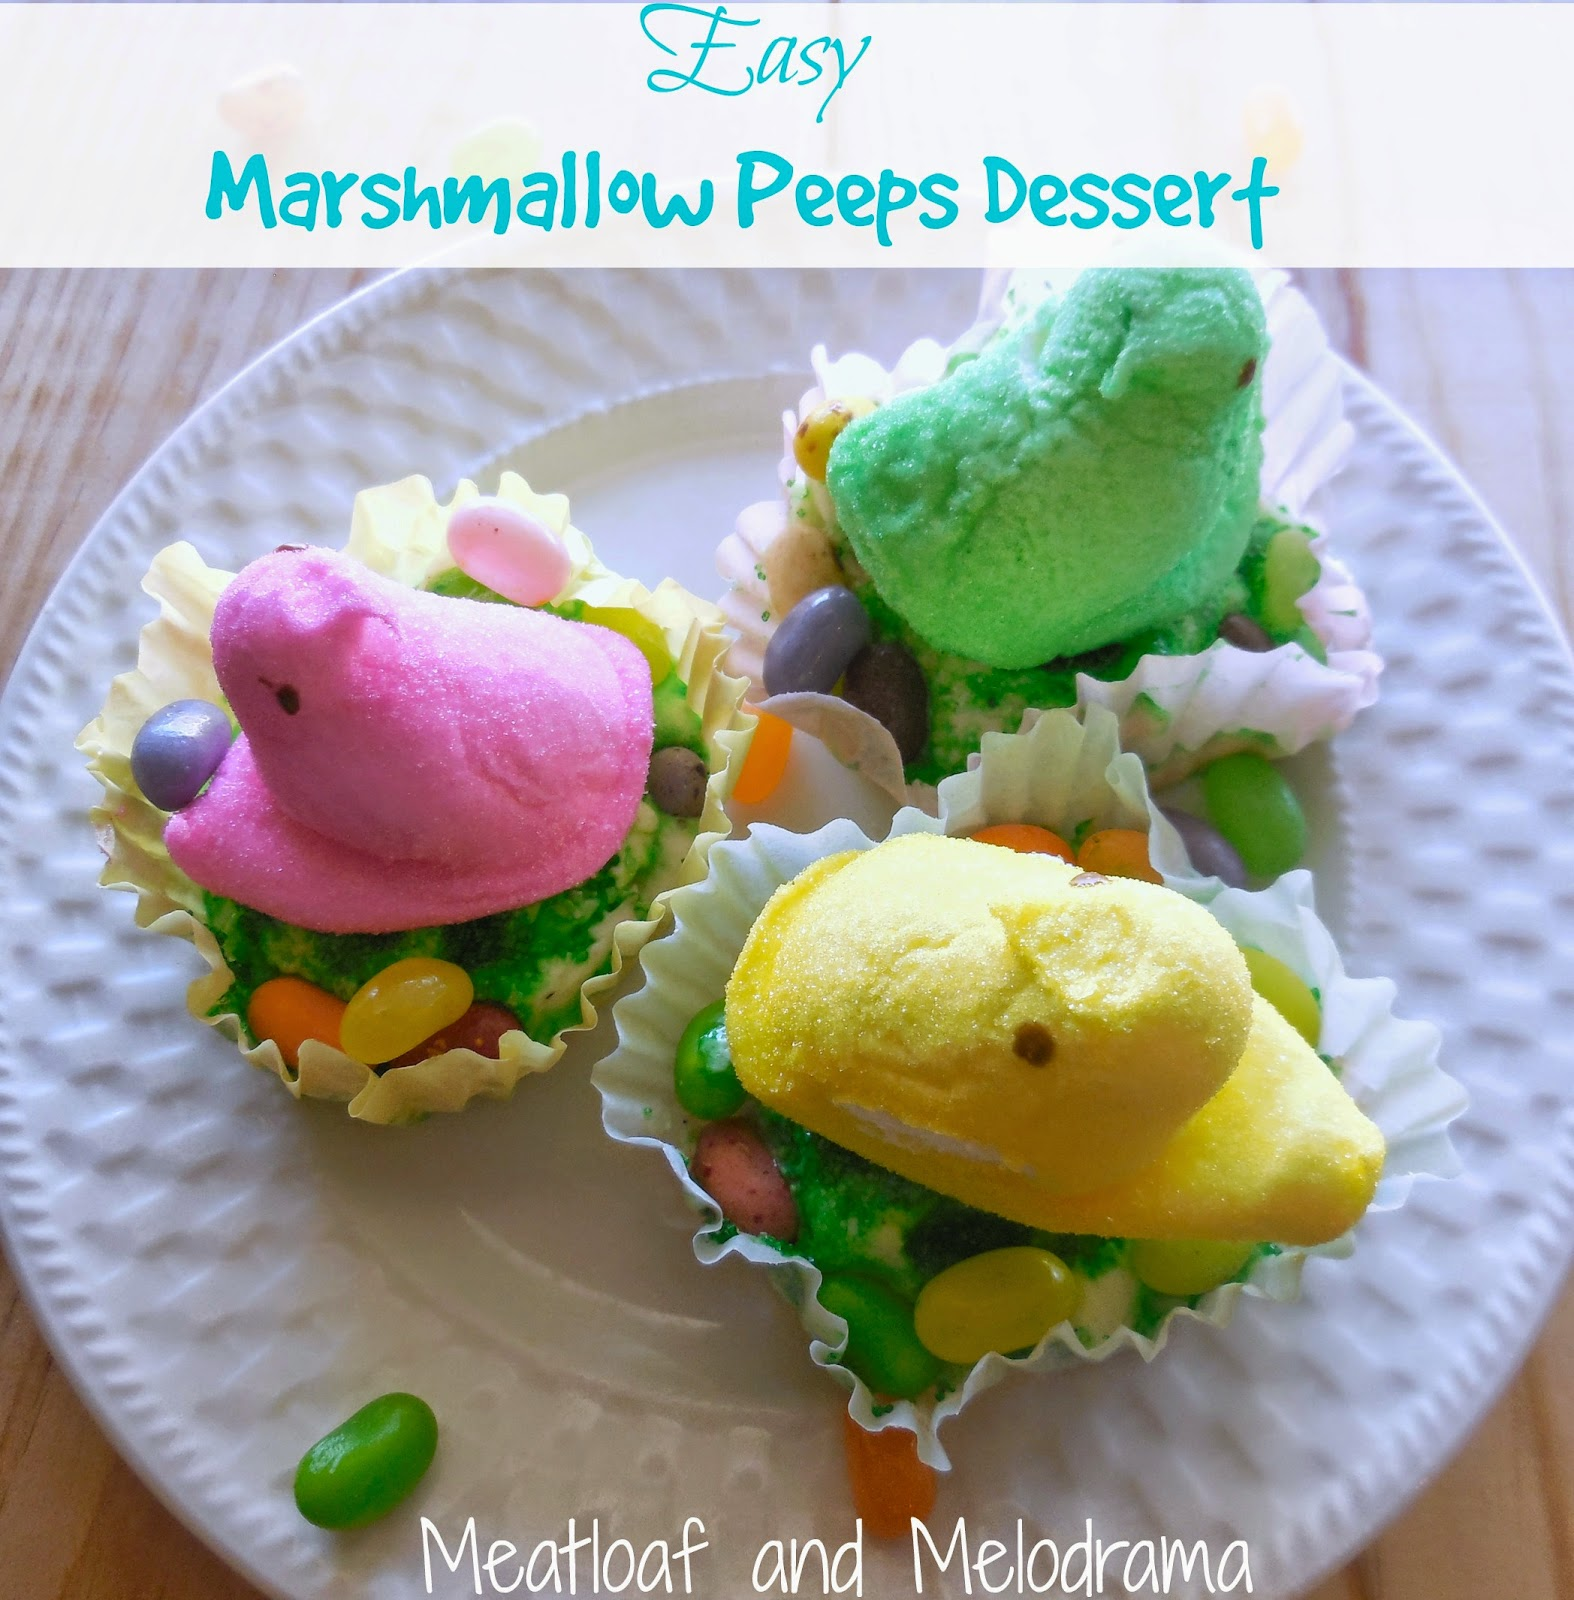 marshmallow peeps over ice cream muffins